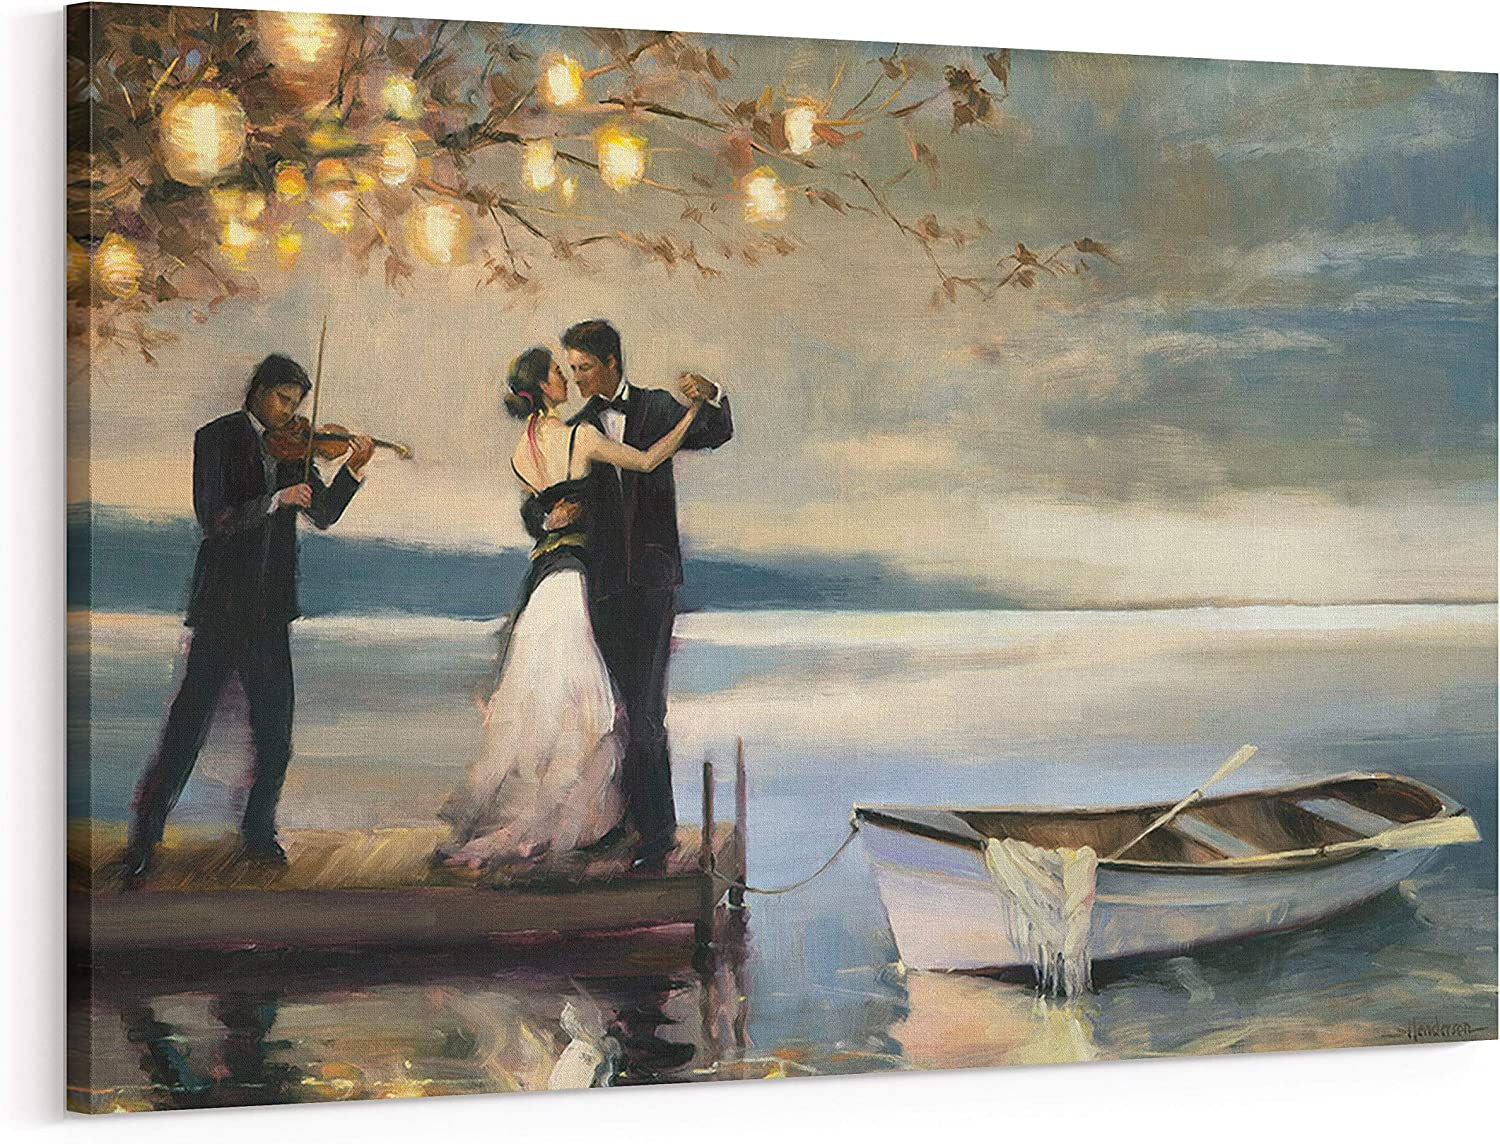 Twilight Romance Canvas Wall Art, Romantic Couple Dancing by Lake Oil Painting Wall Art Home Decor for Living Room Bedroom Gallery Wrapped, 20x30 Inch